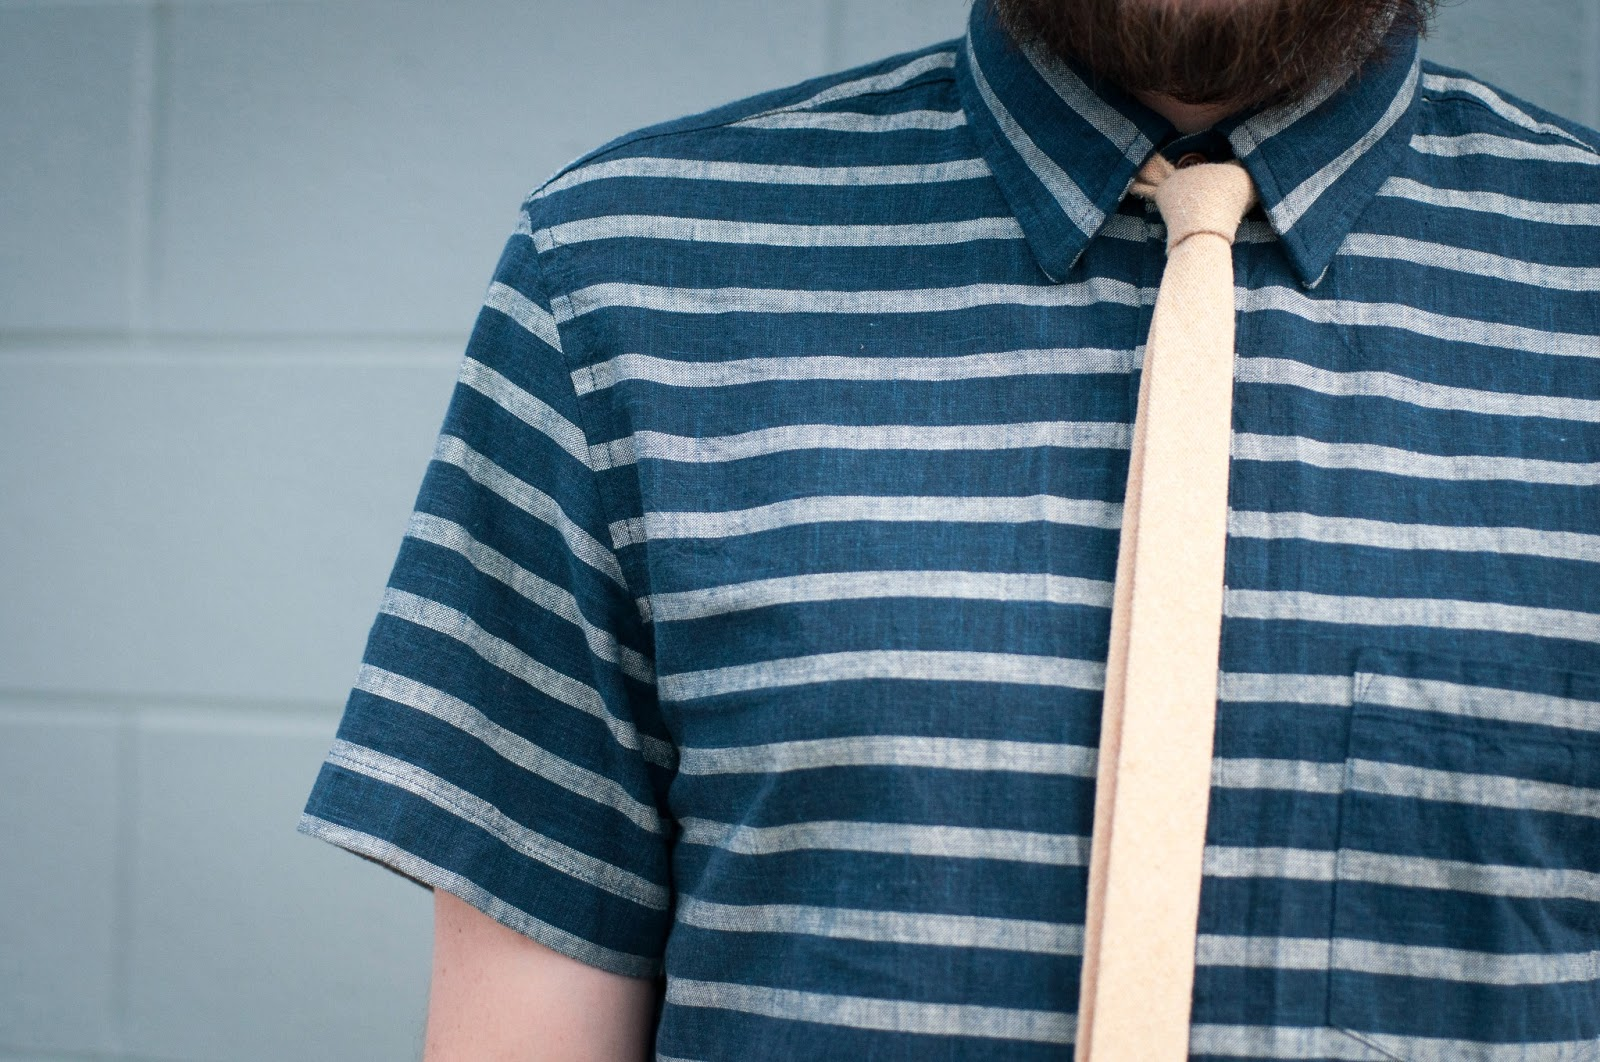 mens fashion blog, mens style blog, skinny tie, stripes, jcrew short sleeve short, jcrew, ootd